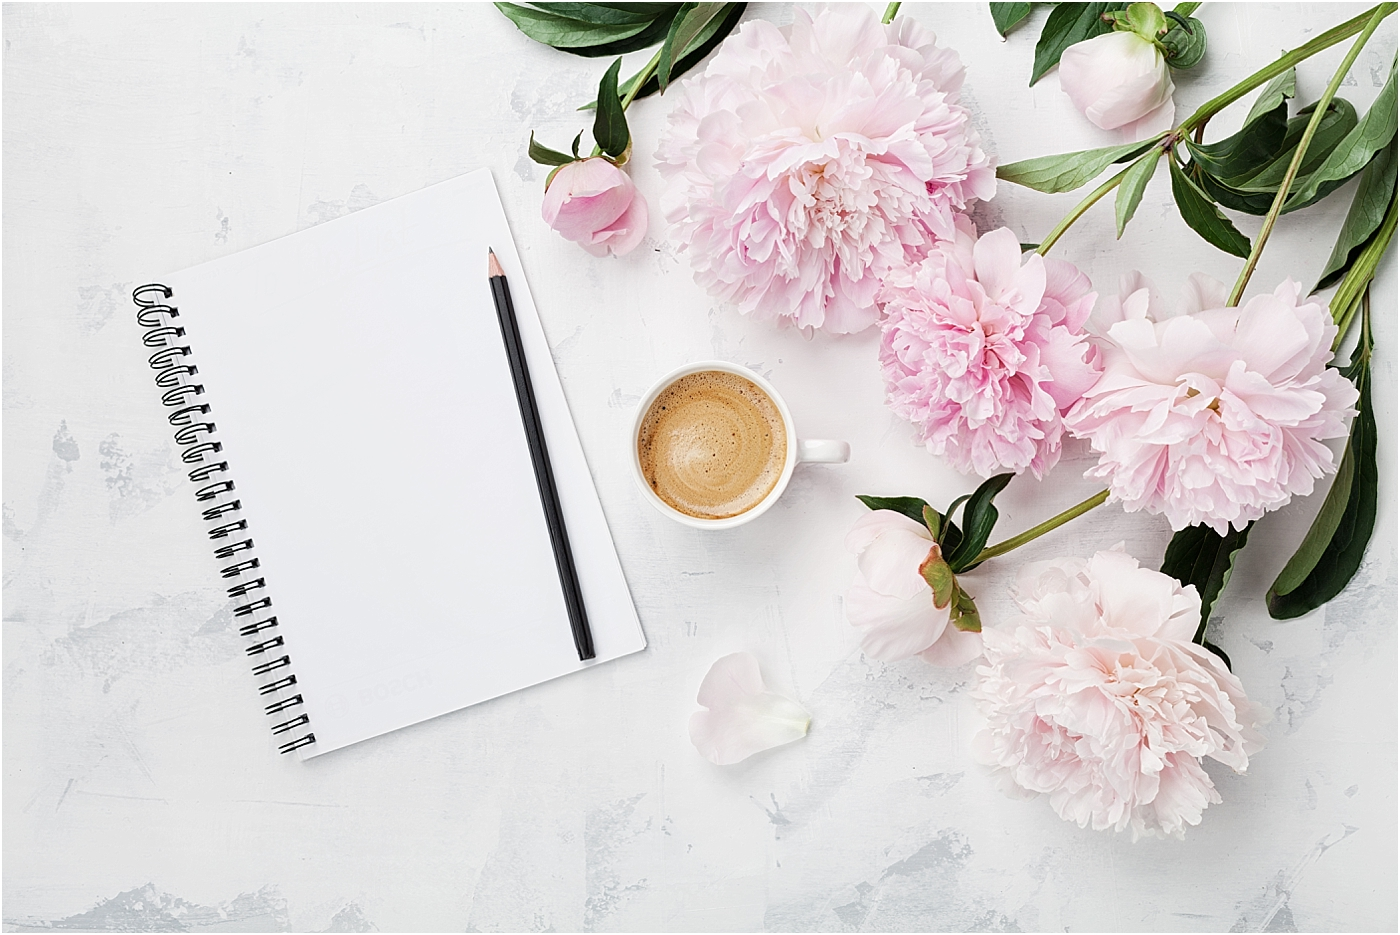 Planning a wedding? Need some #wedpro Advice? - I focus on authentic connection, and real advice. My goal is to rise above the stress factors and let creativity find it's power.Whether you're planning a wedding or need innovative business strategy,I can help your project find it's full potential.